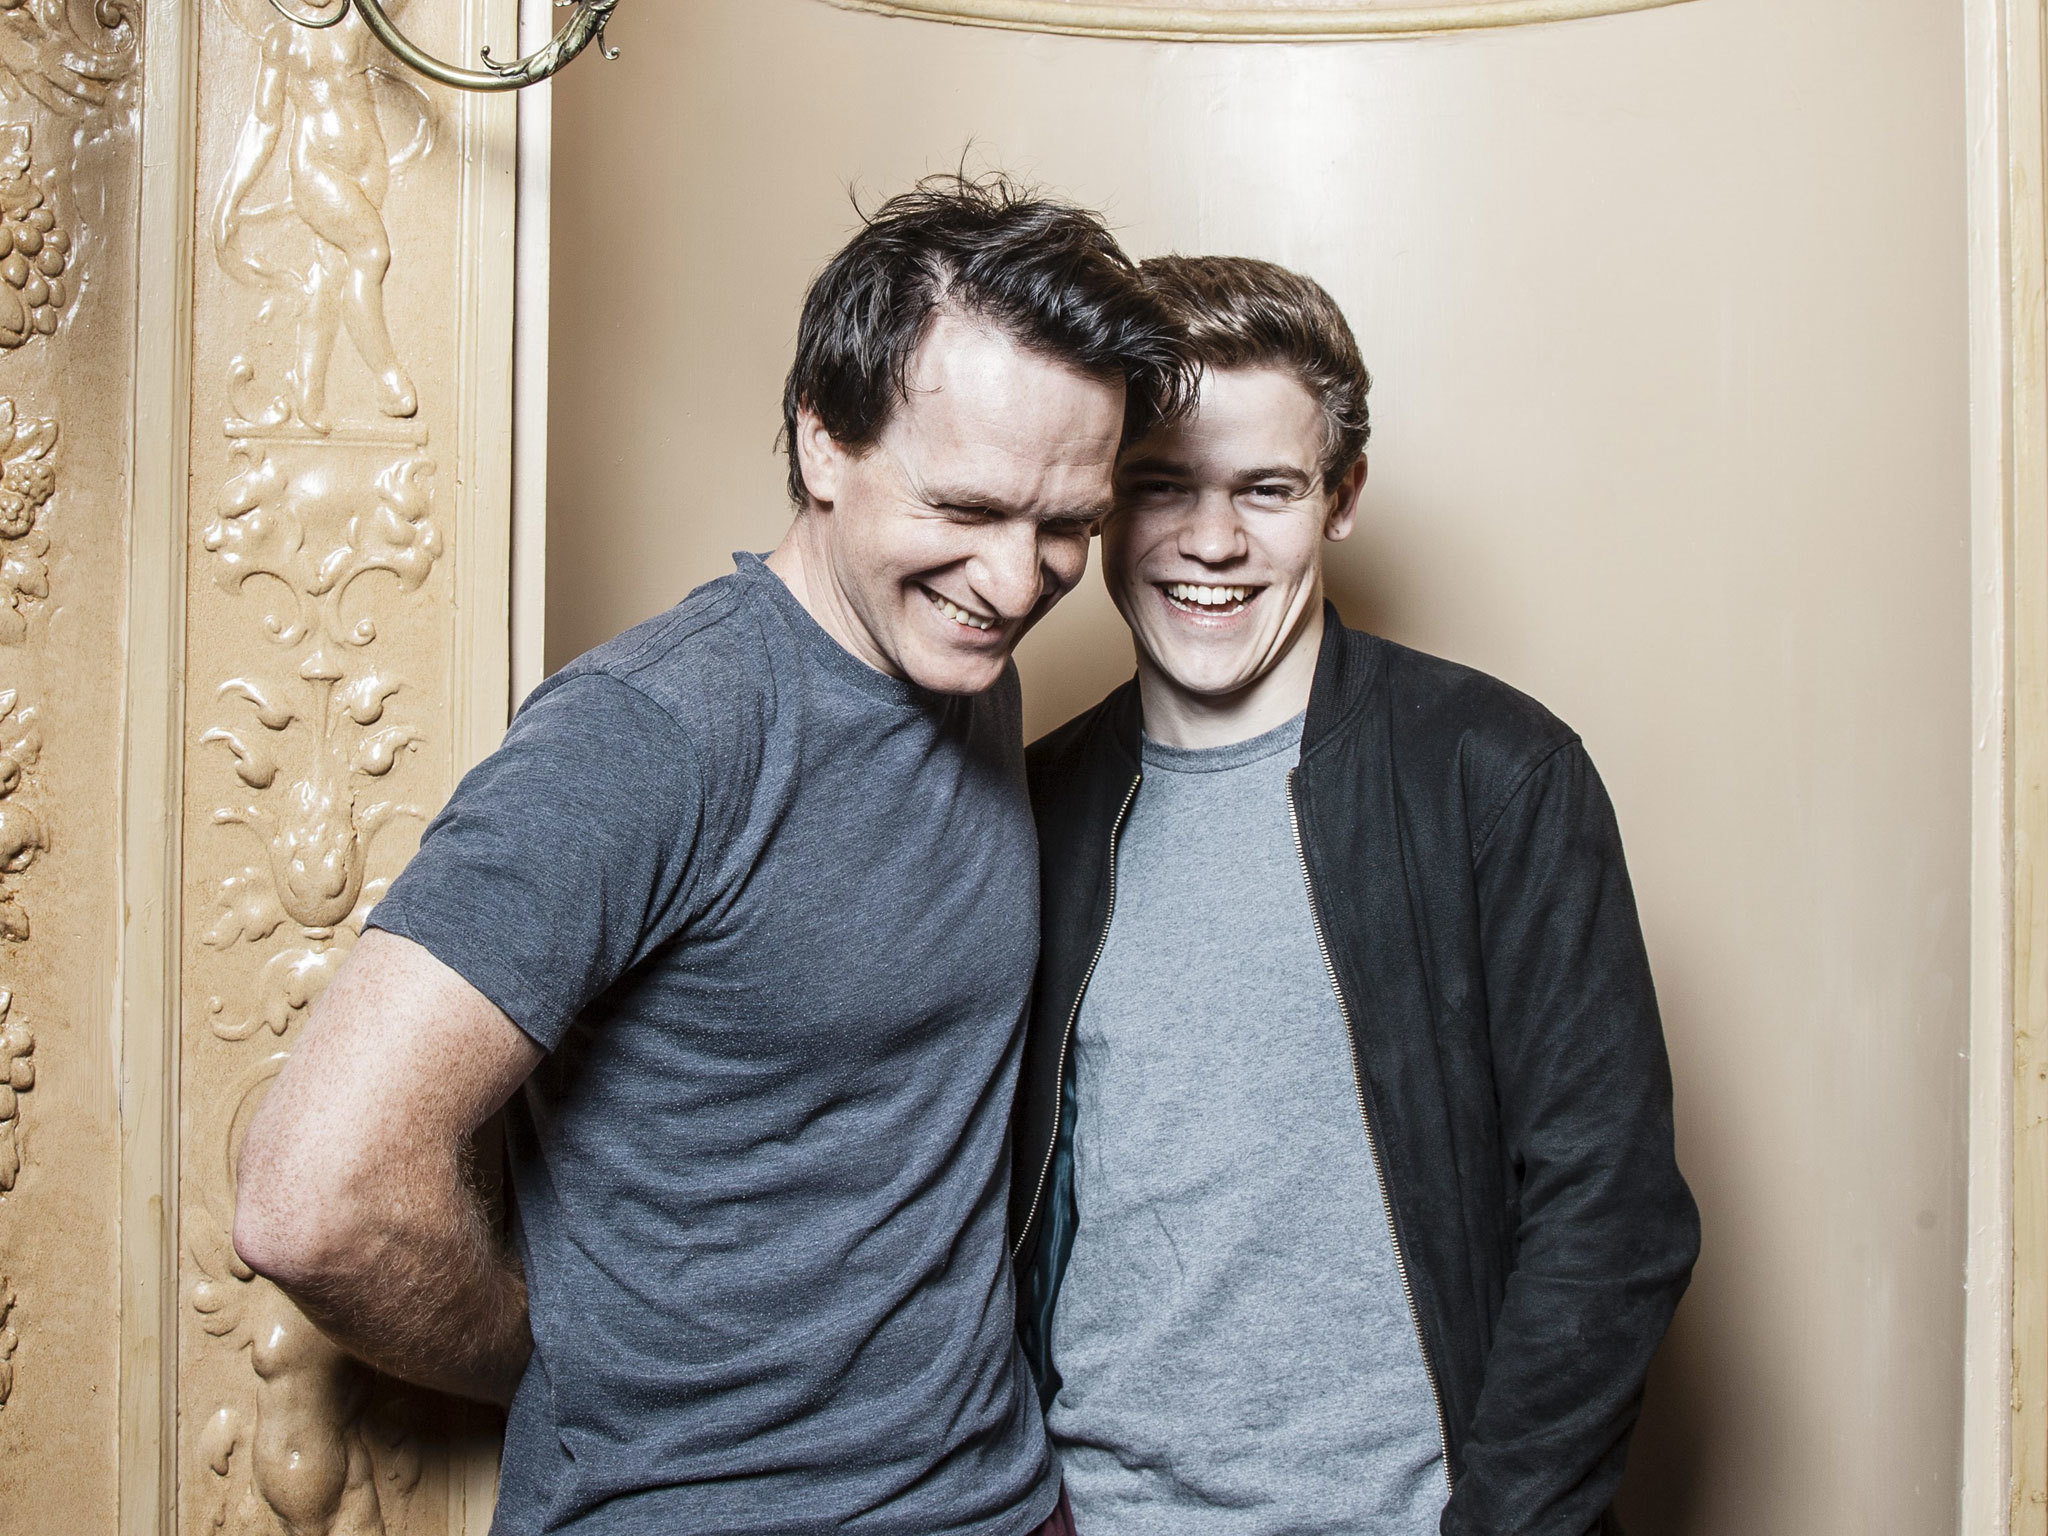 Potter and Son interview